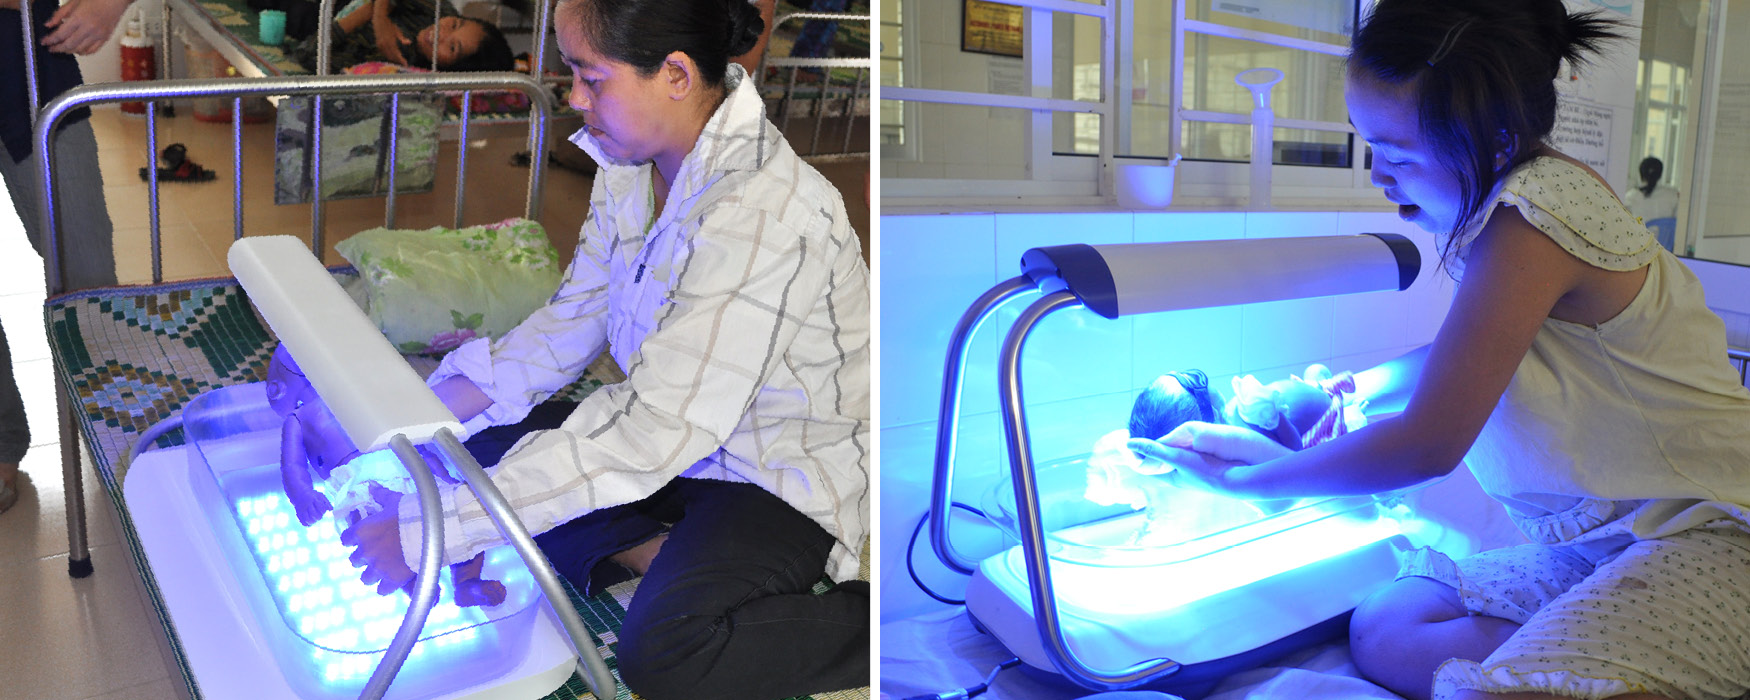 Left: A mother bumps the baby doll's head while lifting it out of the alpha prototype. Right: A mother safely and comfortably lifts her baby in and out of the final Firefly device with raised top light.